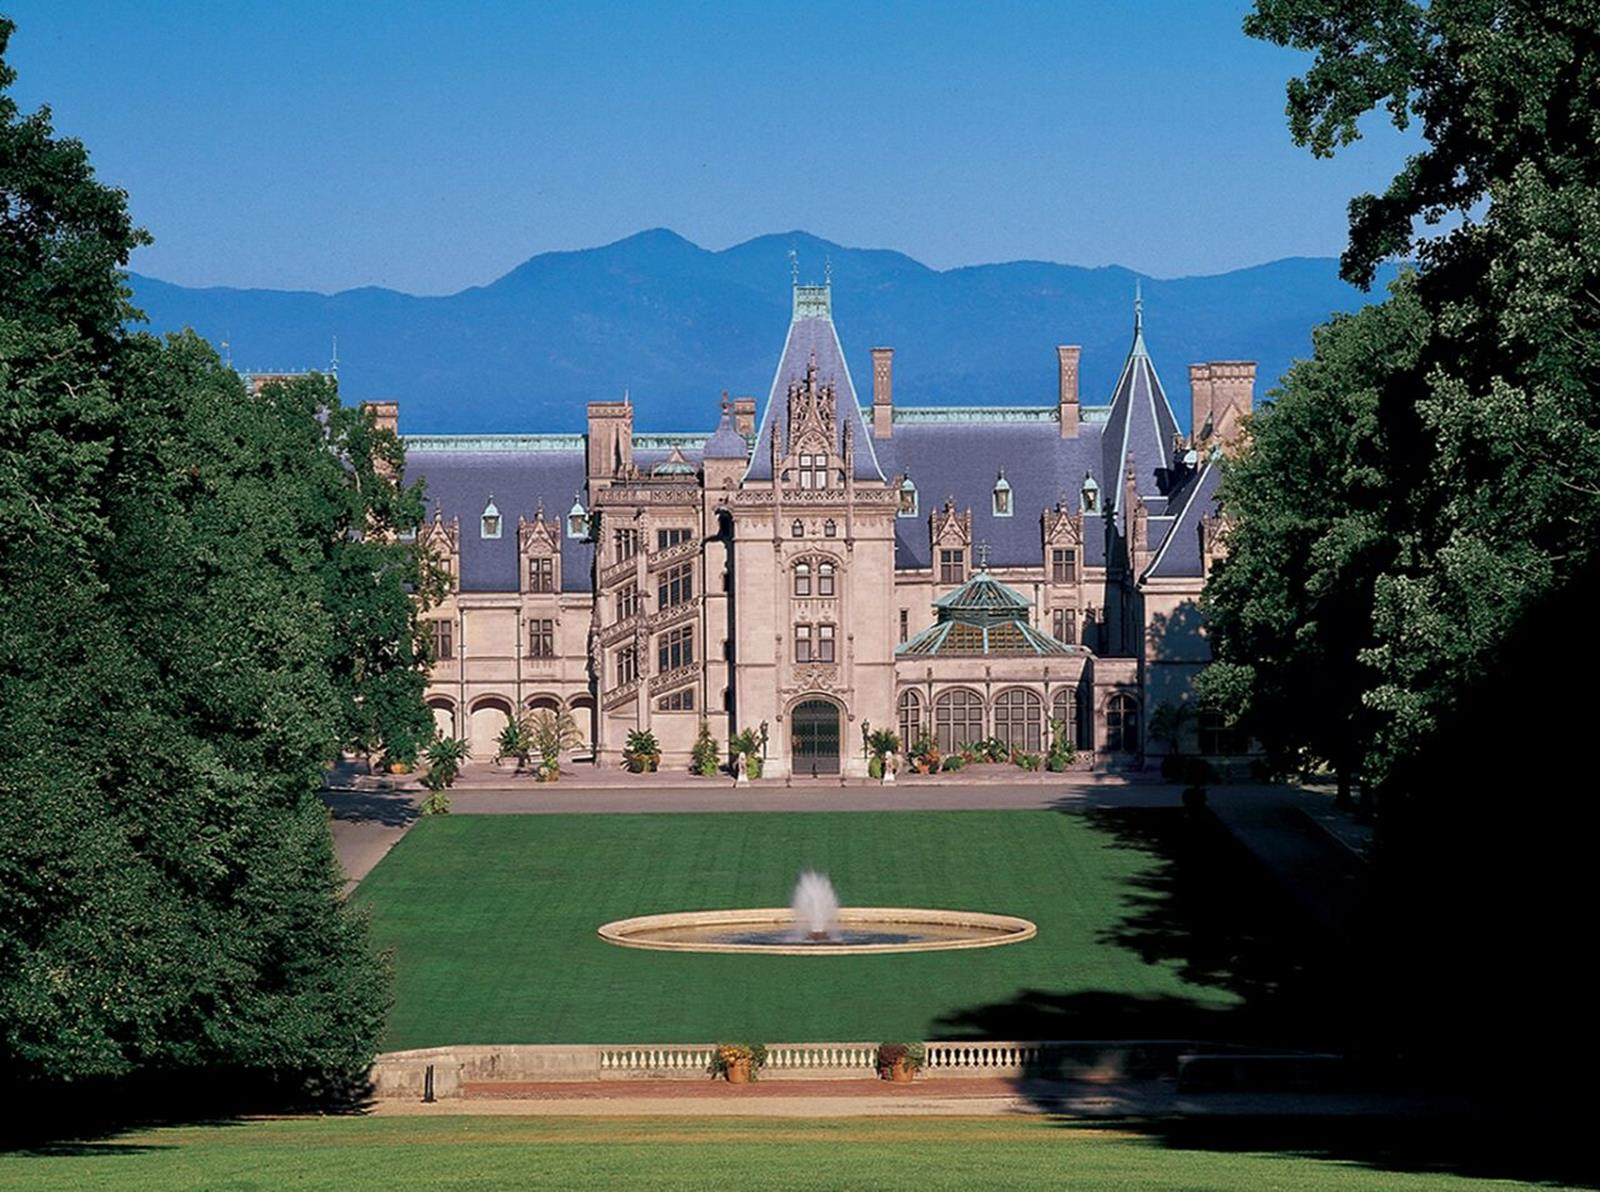 Biltmore Estate. Credit: ExploreAsheville